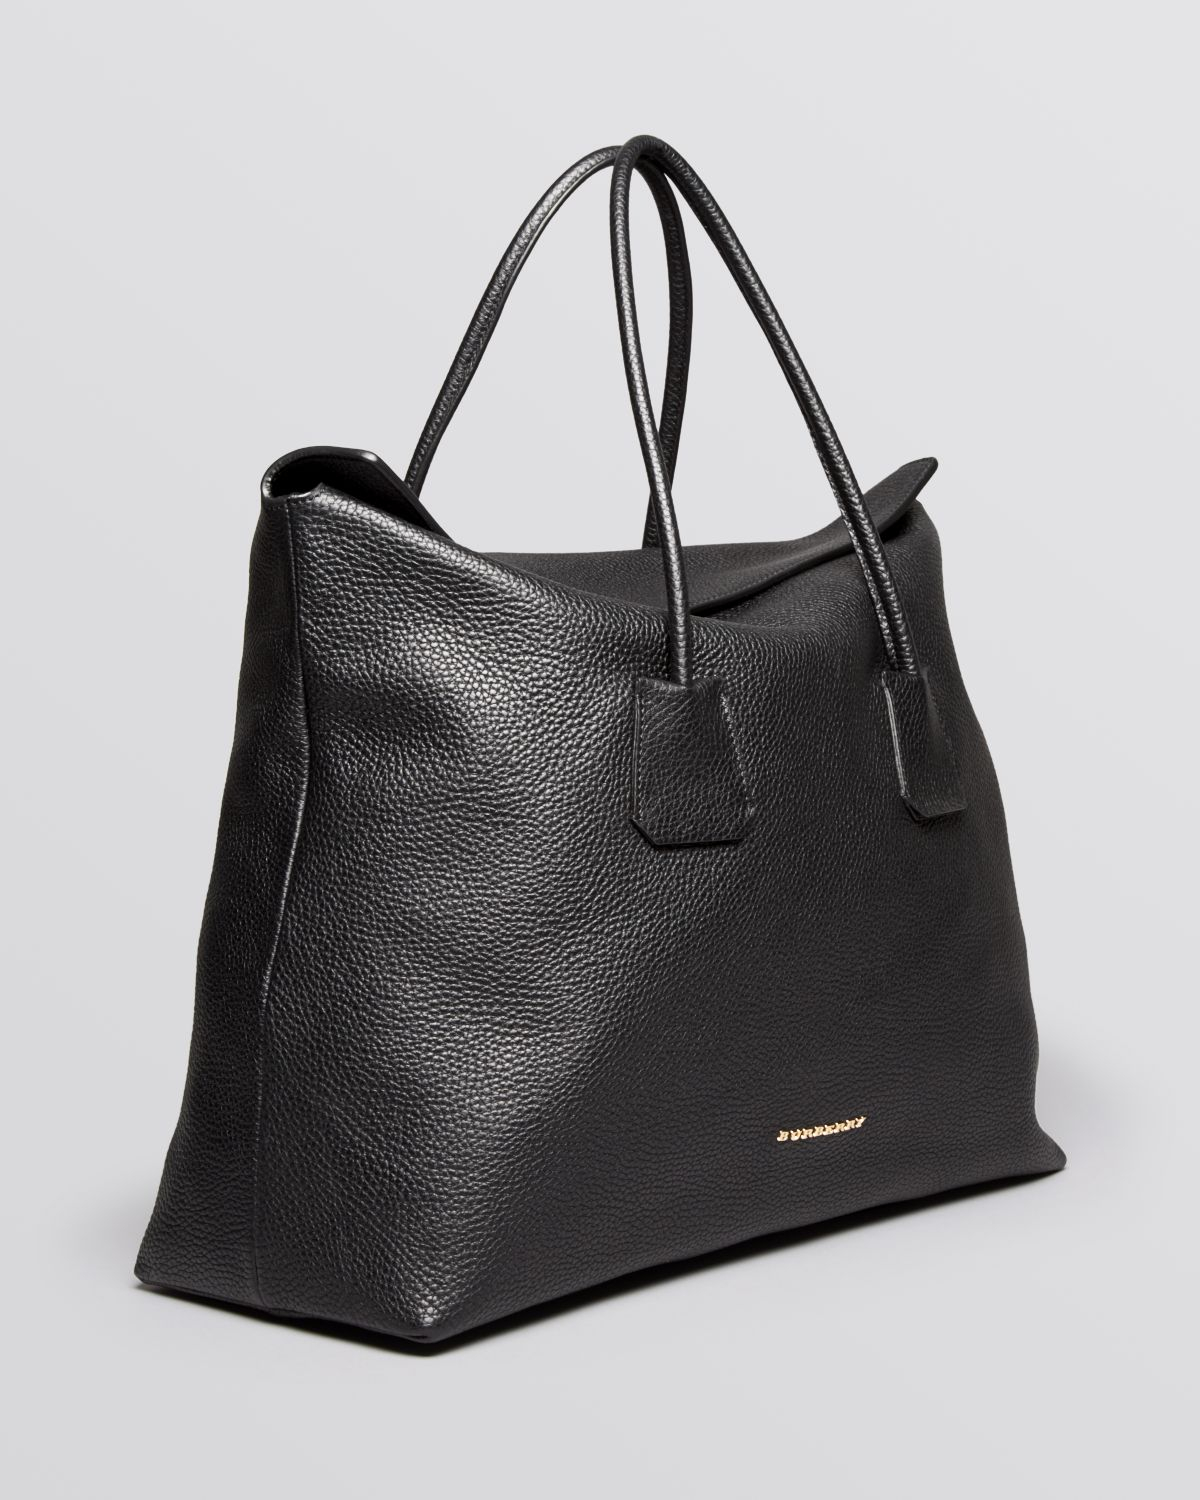 Lyst - Burberry Tote London Grainy Leather Large Baynard in Black 5a3e246921b42